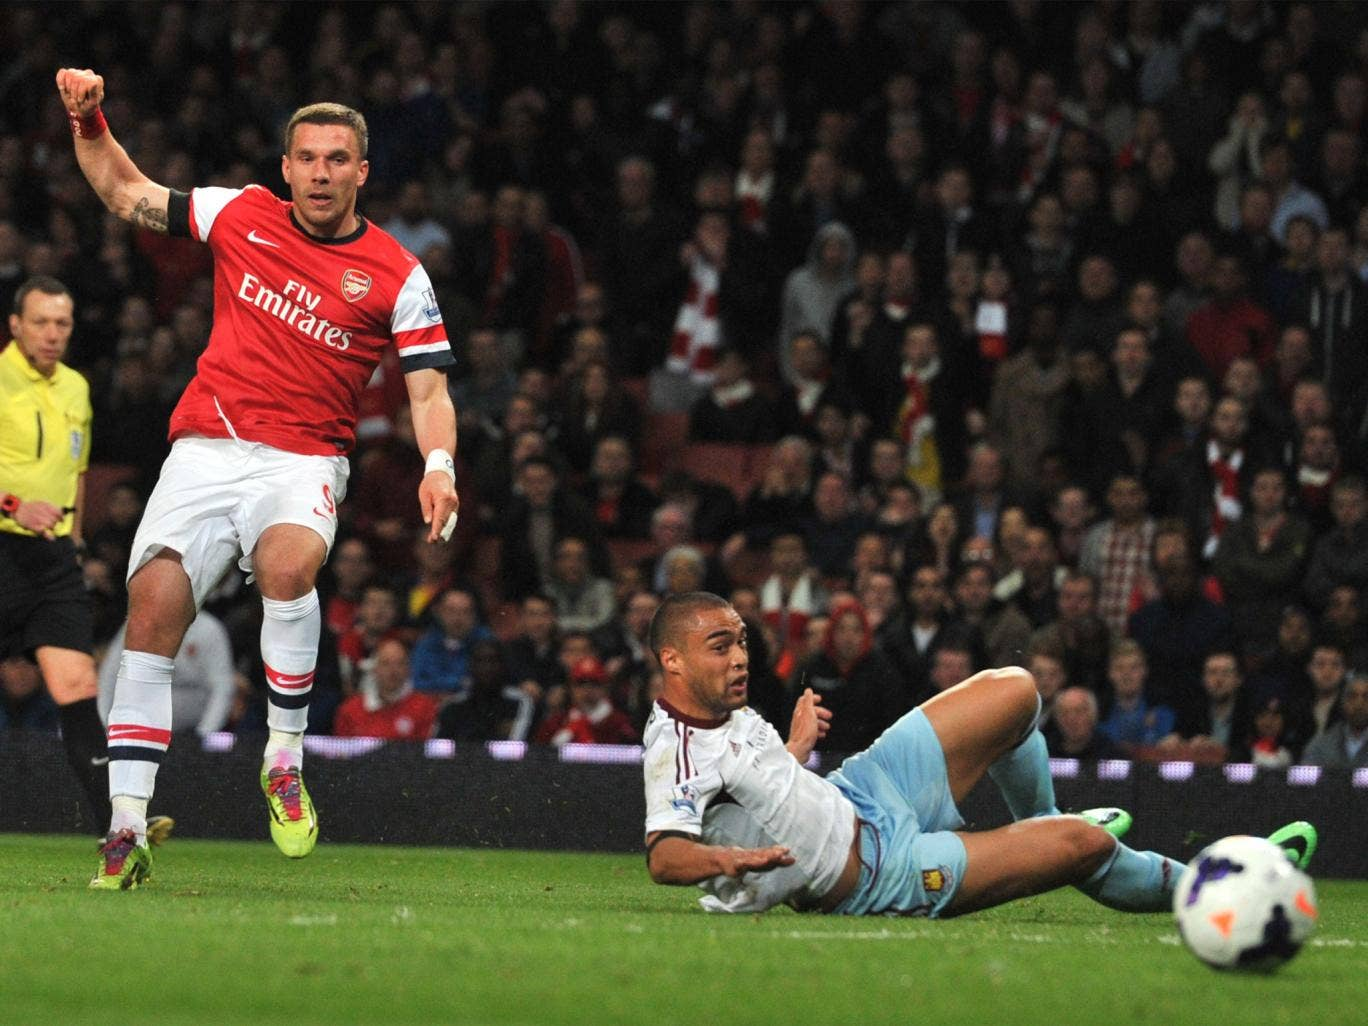 Lukas Podolski equalises with a precise, powerful finish